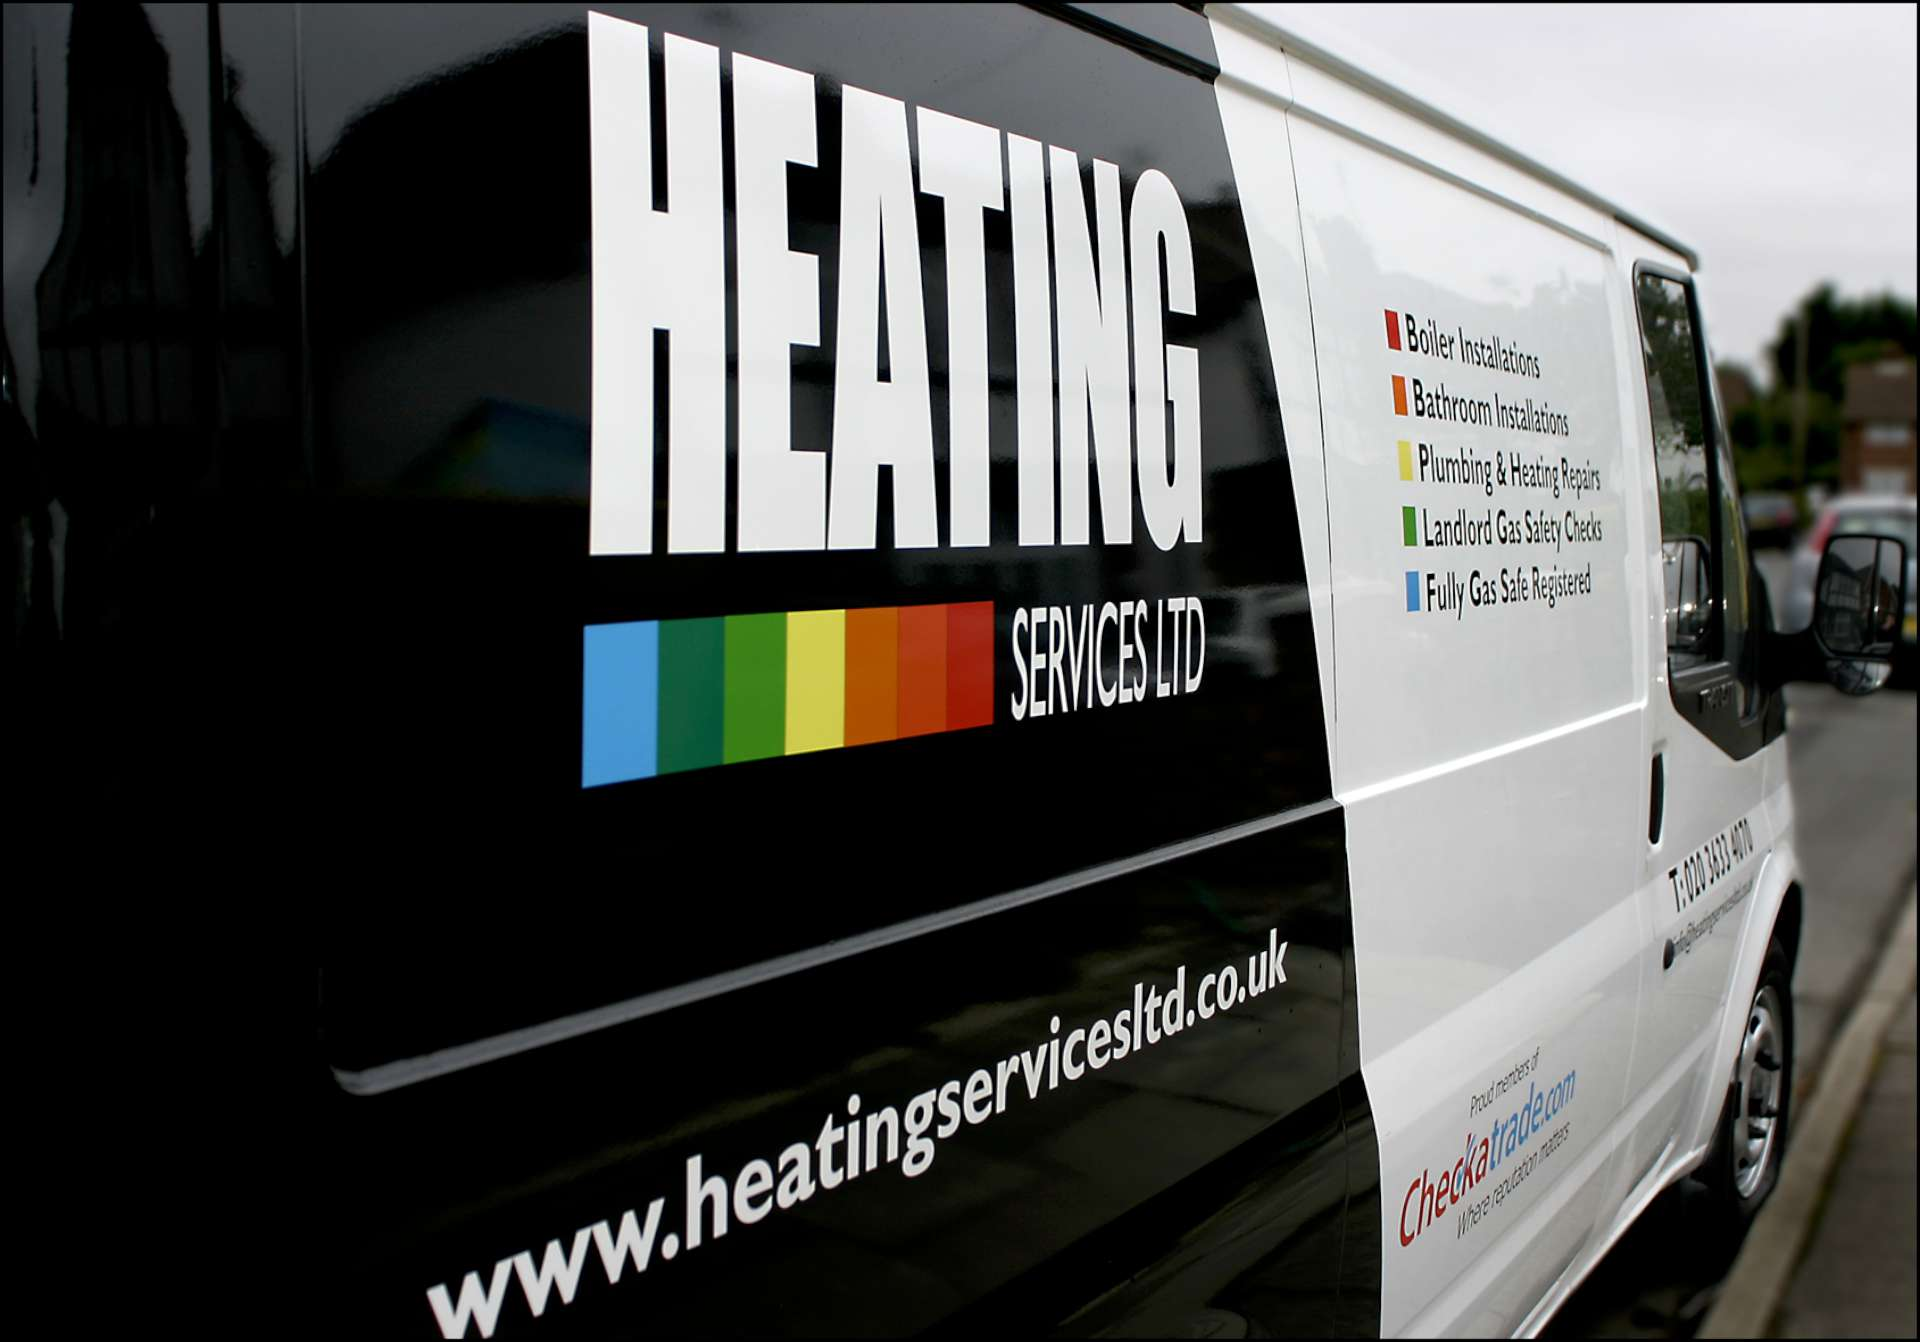 Plumbers_ Boiler Installation_ Service and Repairs and Bathroom Design and Installation by Heating Services Ltd in Dulwich (2)